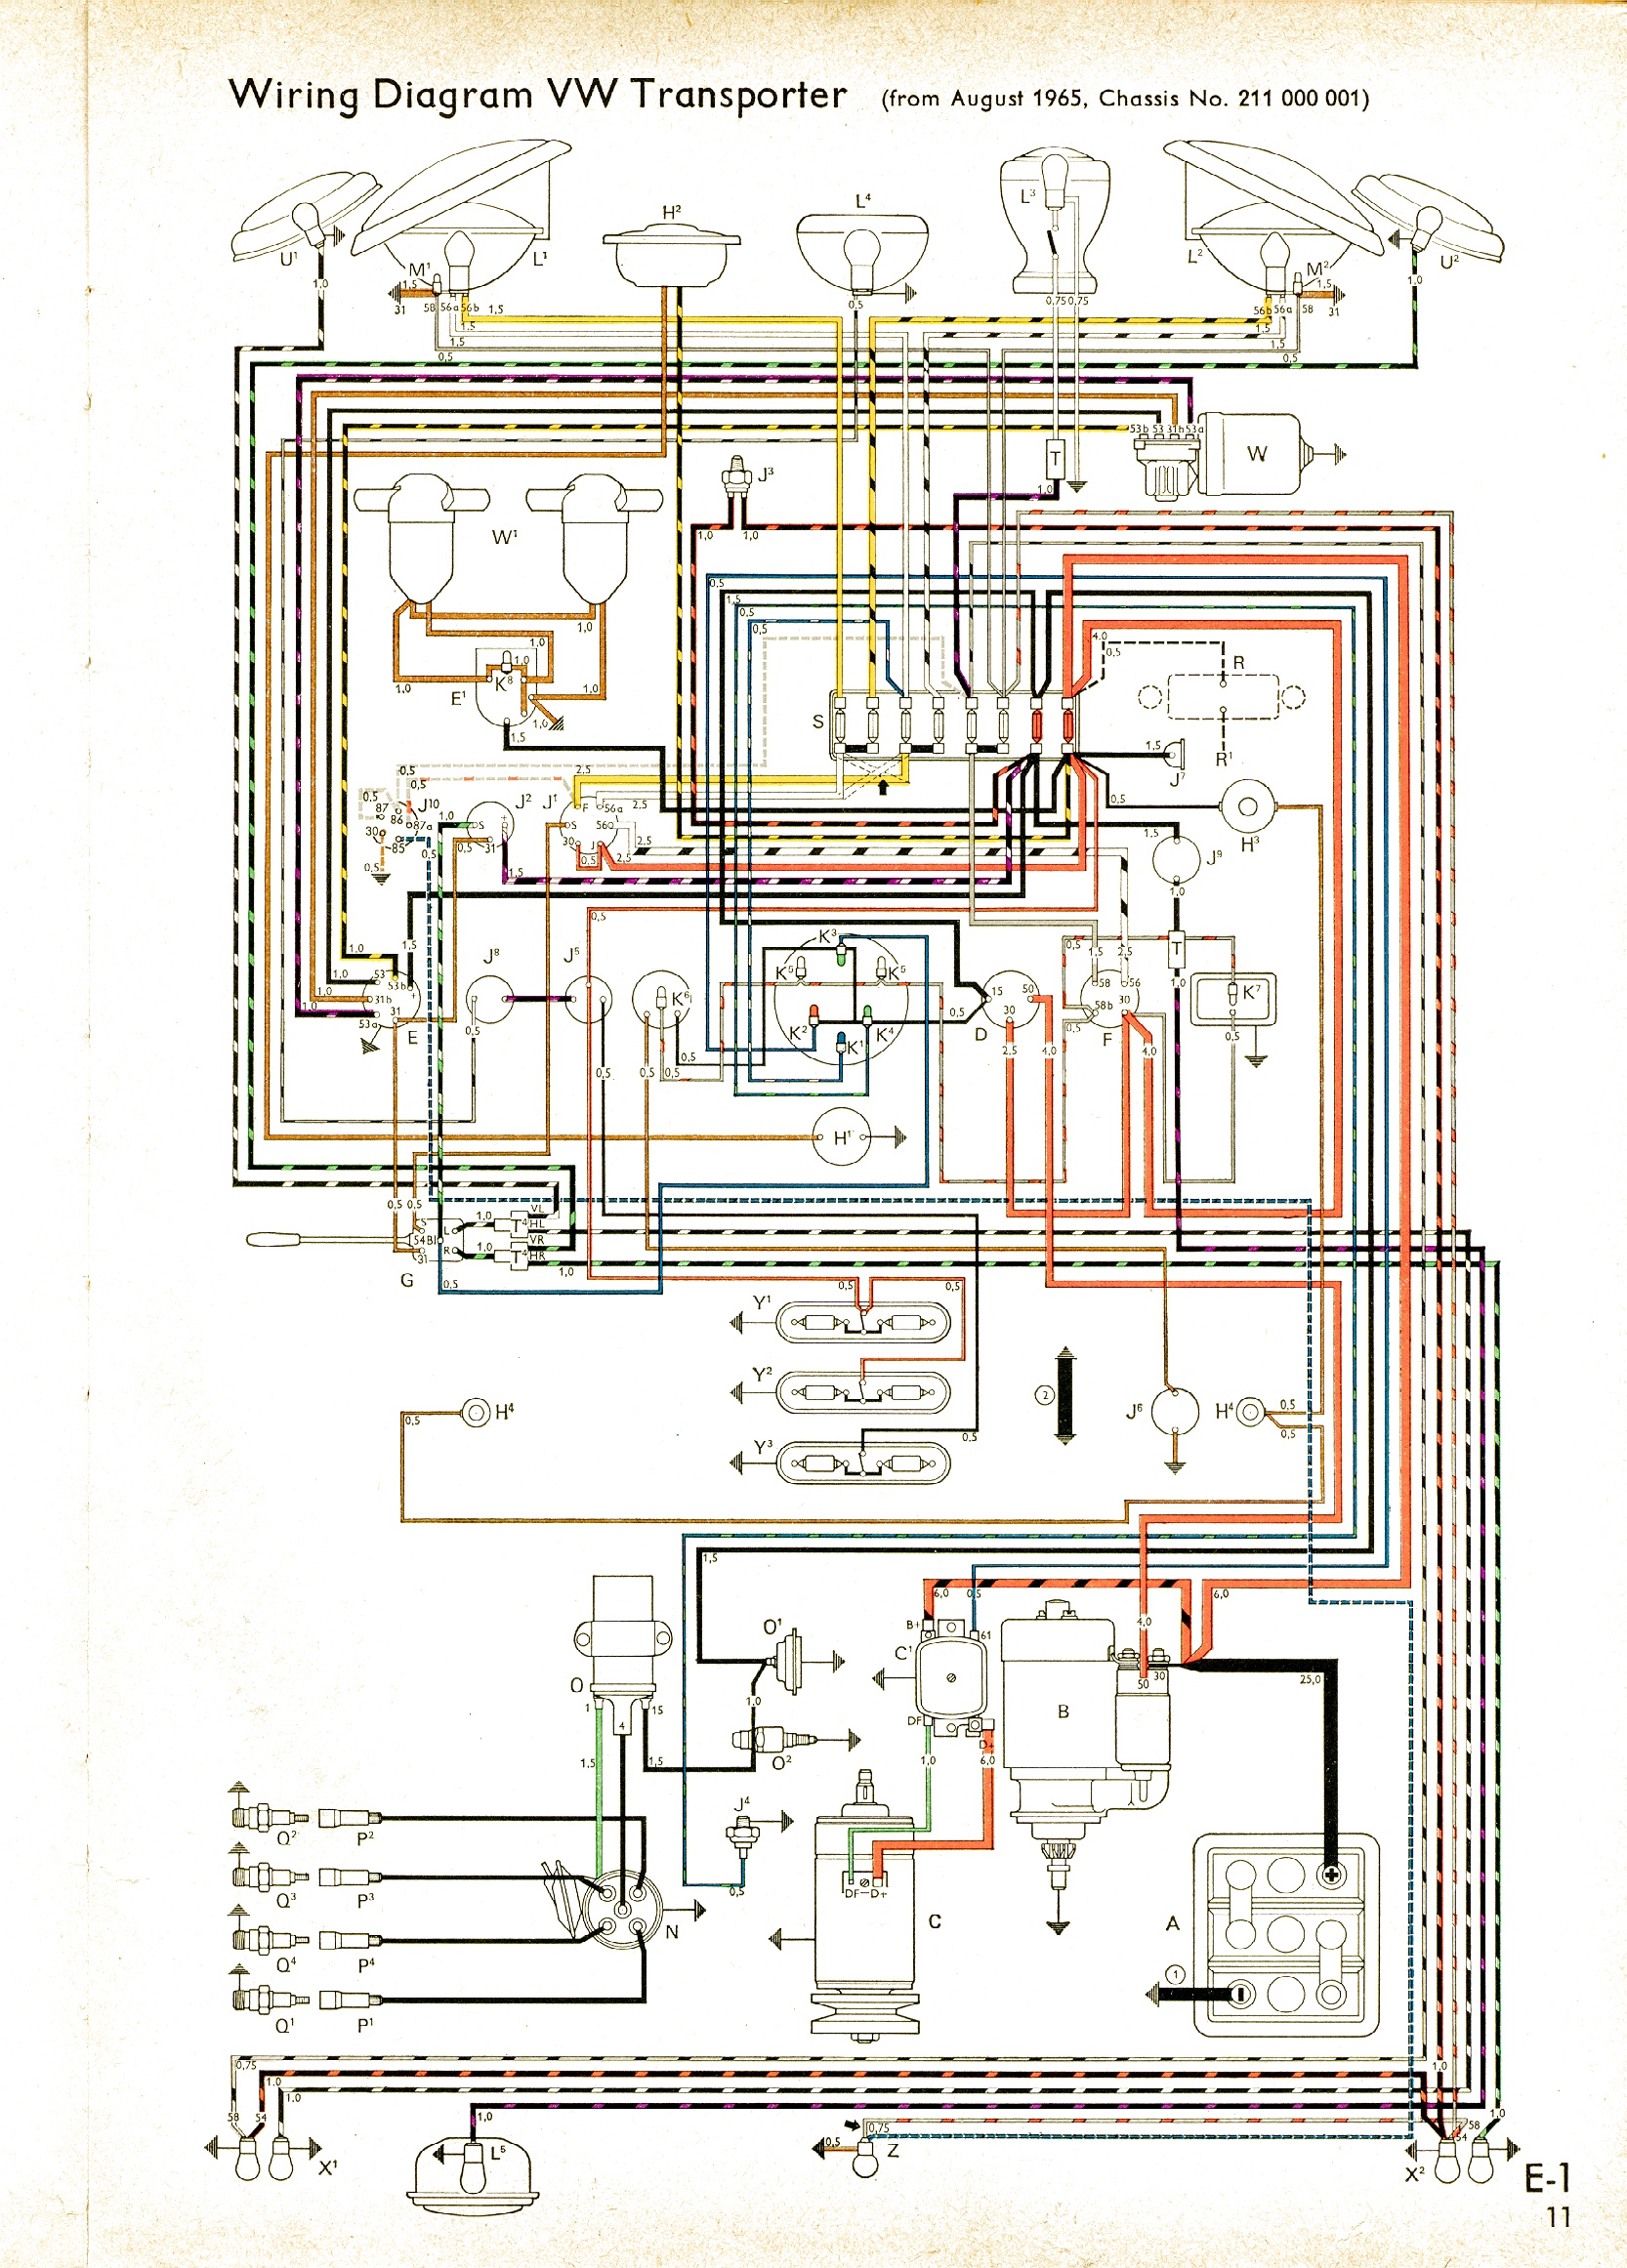 bus 65 vintagebus com vw bus (and other) wiring diagrams vw polo wiring diagram download at couponss.co